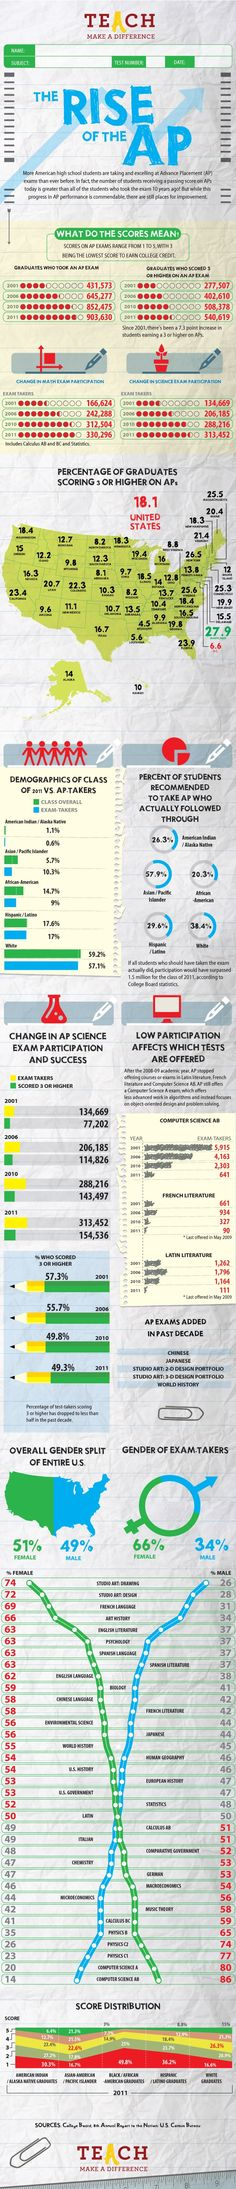 Infographic on the Rise of the AP.